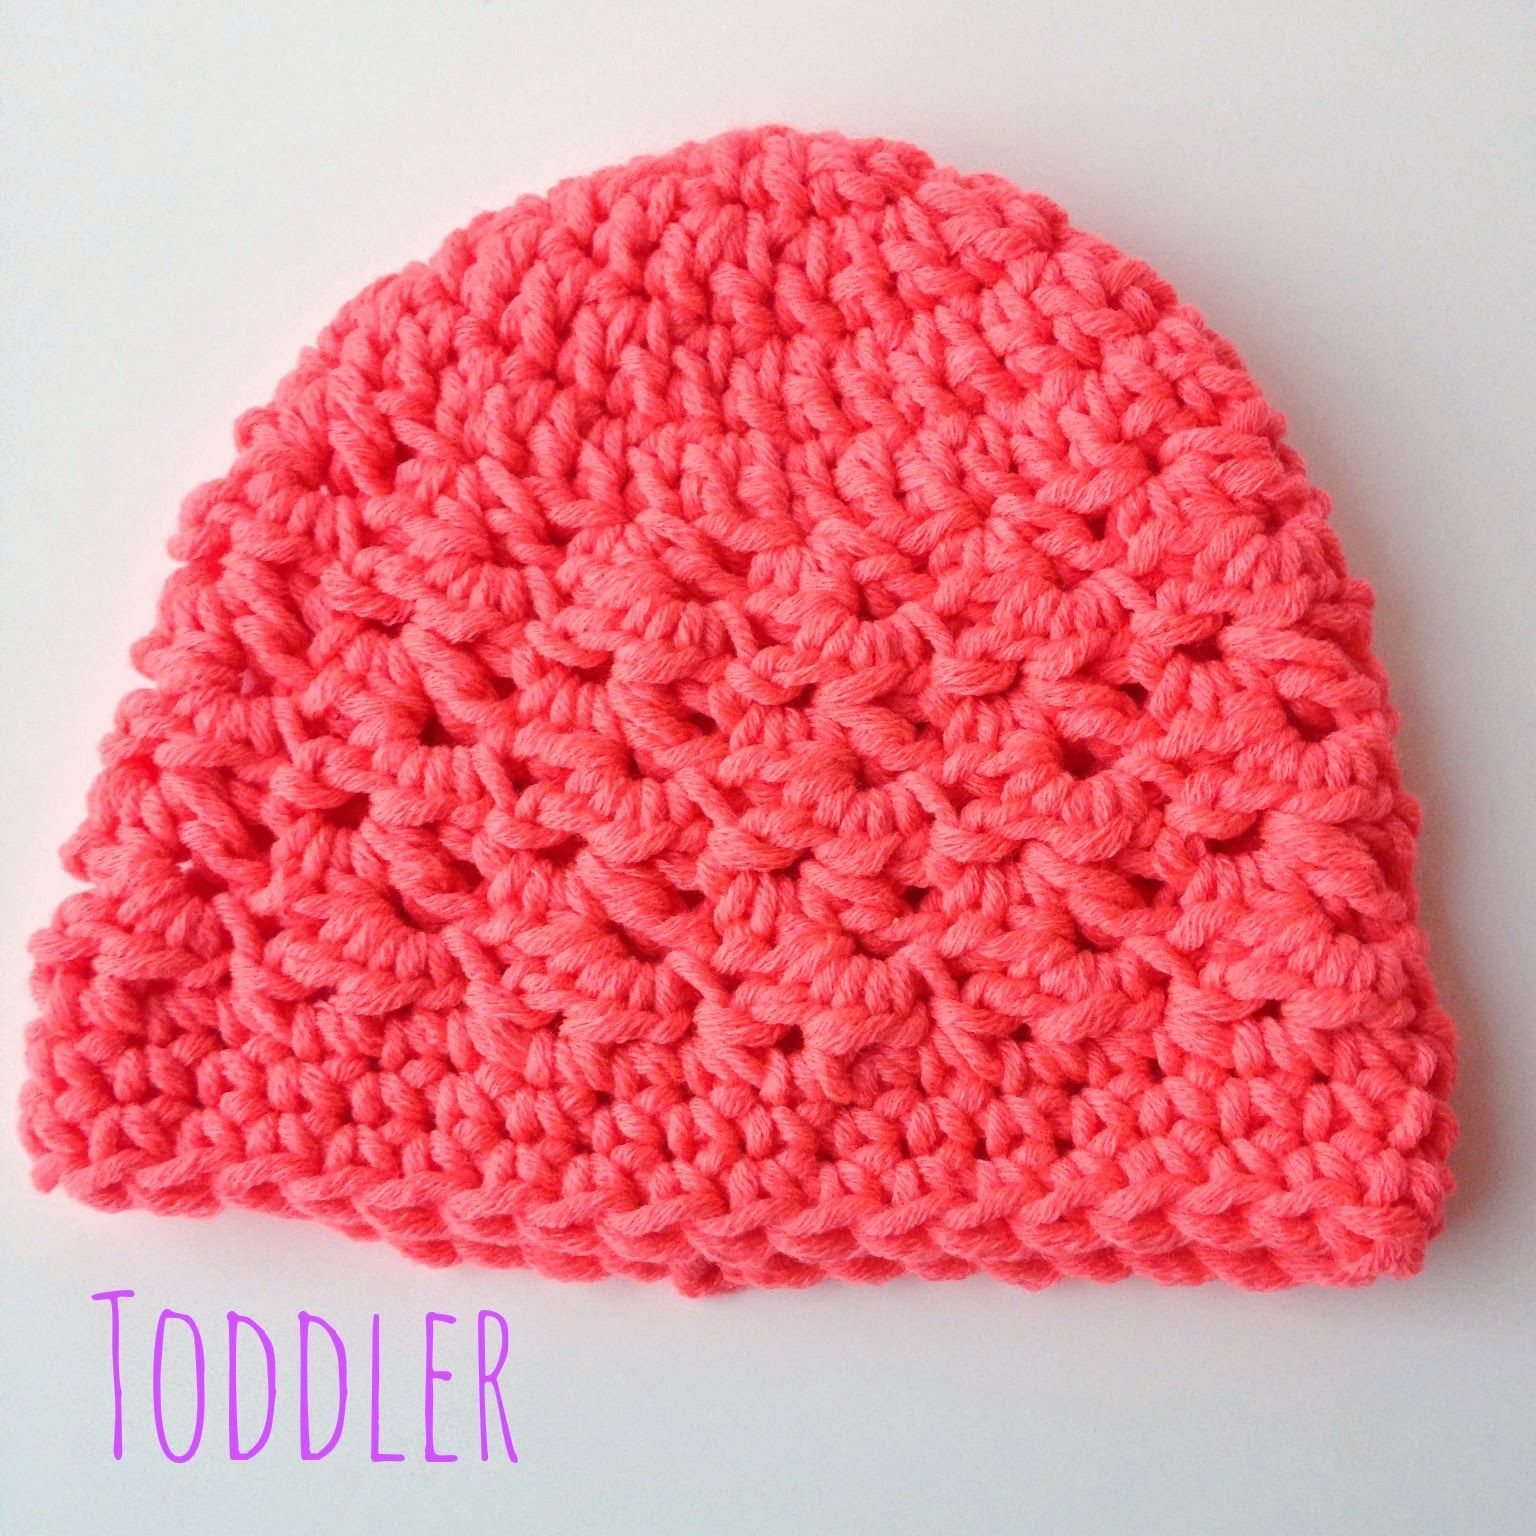 5 Little Monsters: Textured Toddler Beanie: Free Crochet Pattern ...